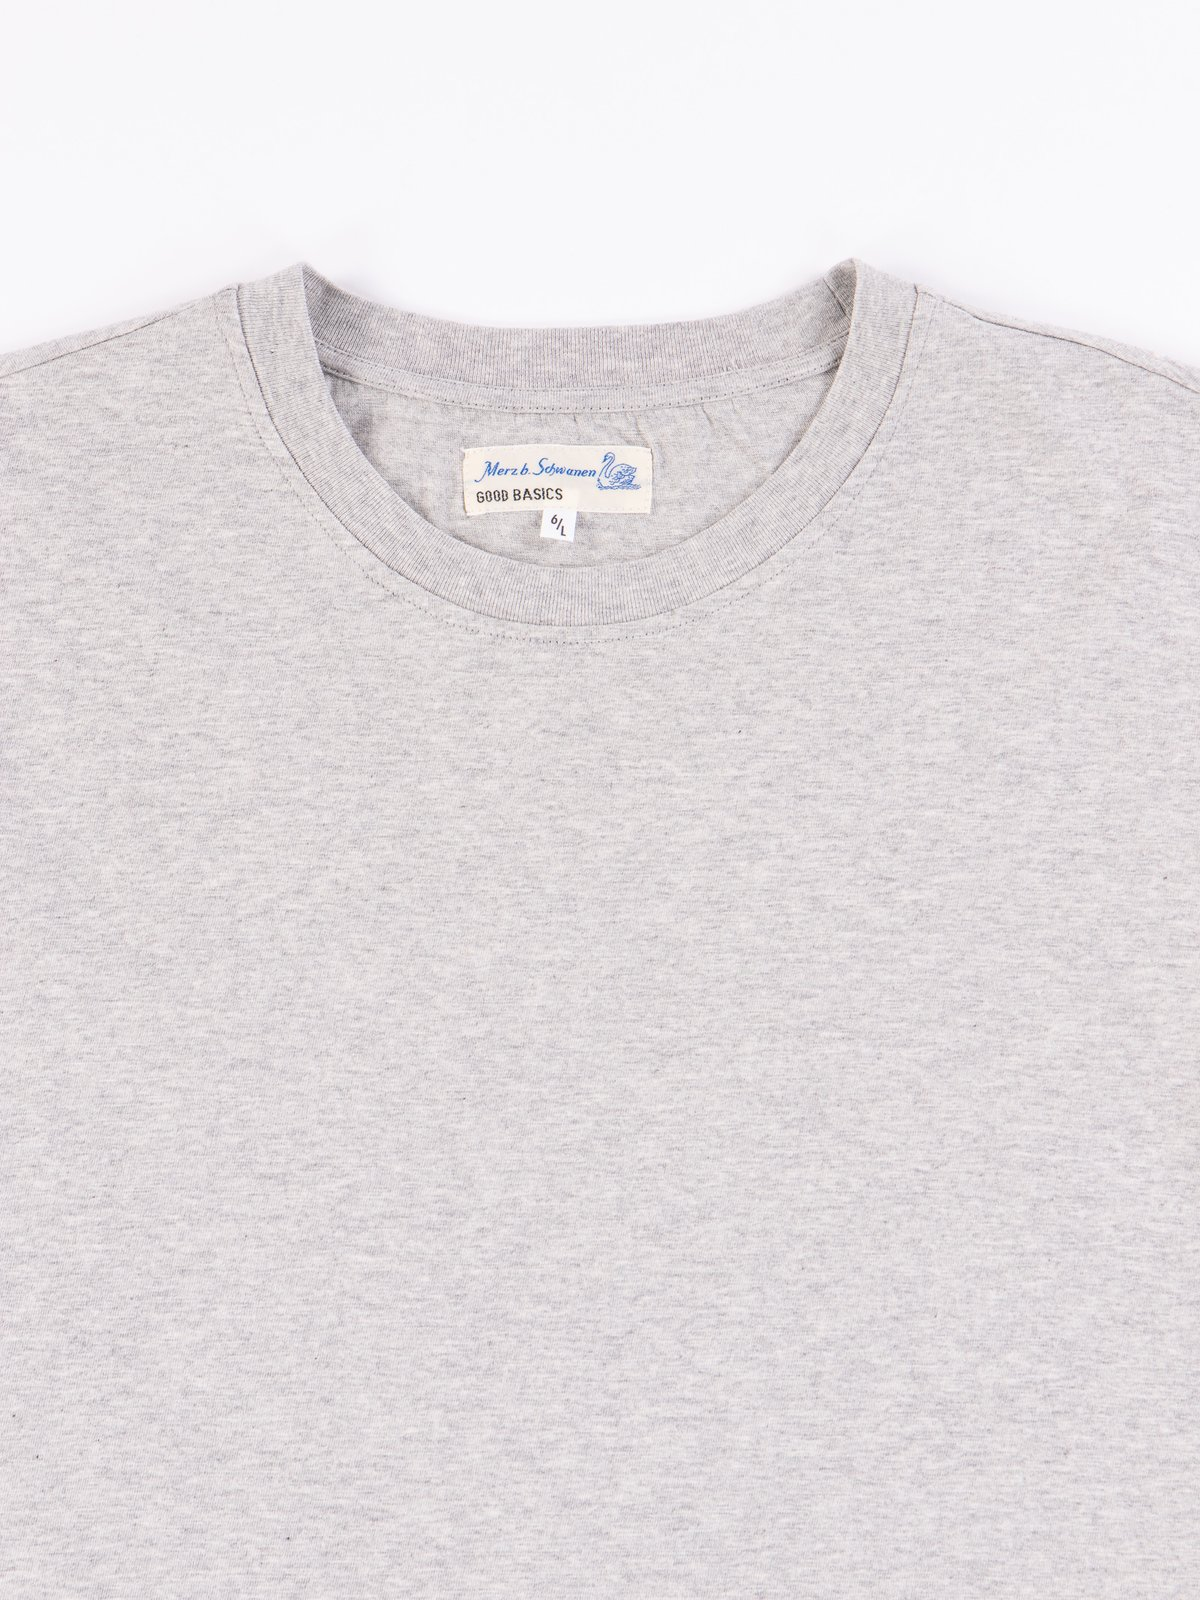 Grey Melange Good Basics CTOS01 Oversized Crew Neck Tee - Image 3